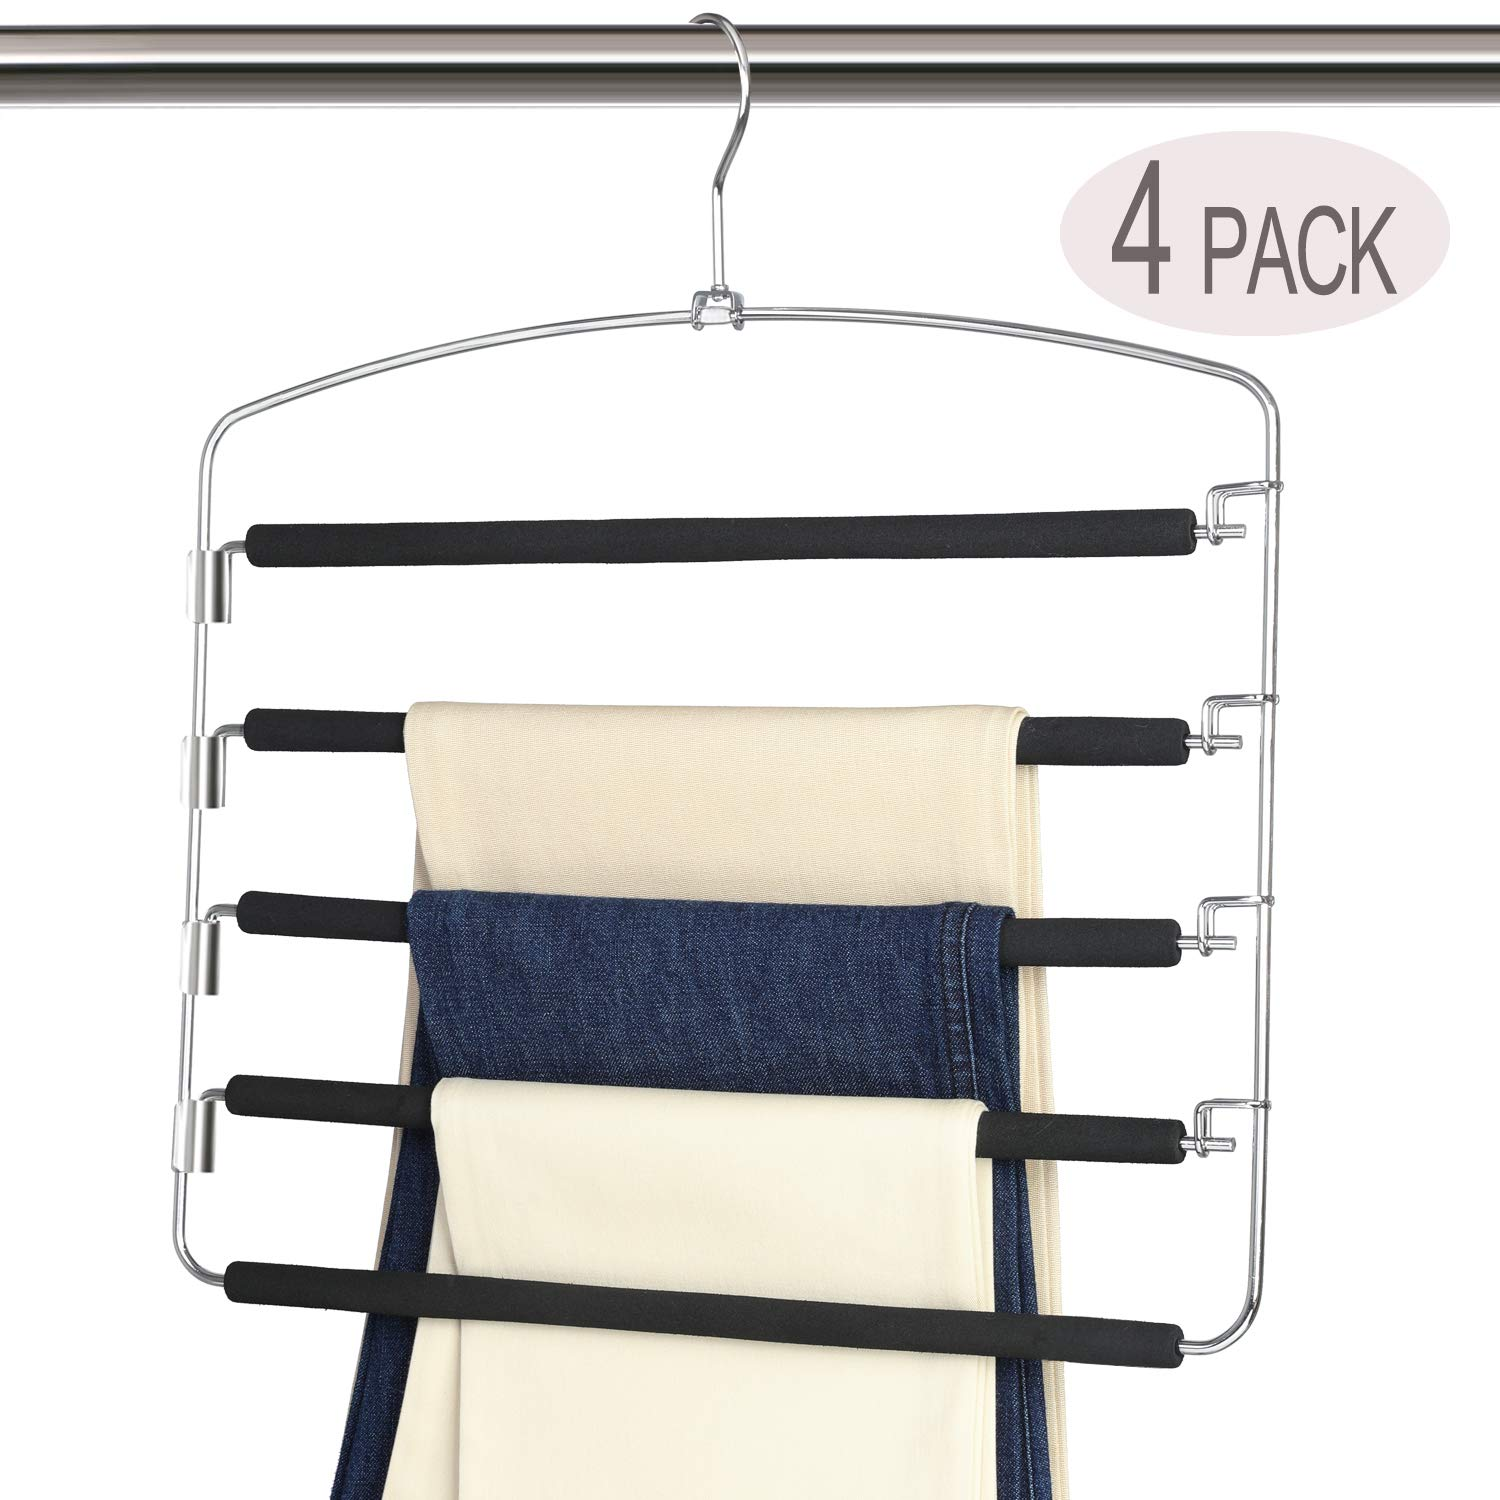 Magicool Space Saving Metal Pants Hangers(4 Pack) 5 Layers Skidproof Foam Padded with Swing Arm Closet Organizer for Pants Jeans Trousers Skirts Scarf Ties by Magicool Hanger